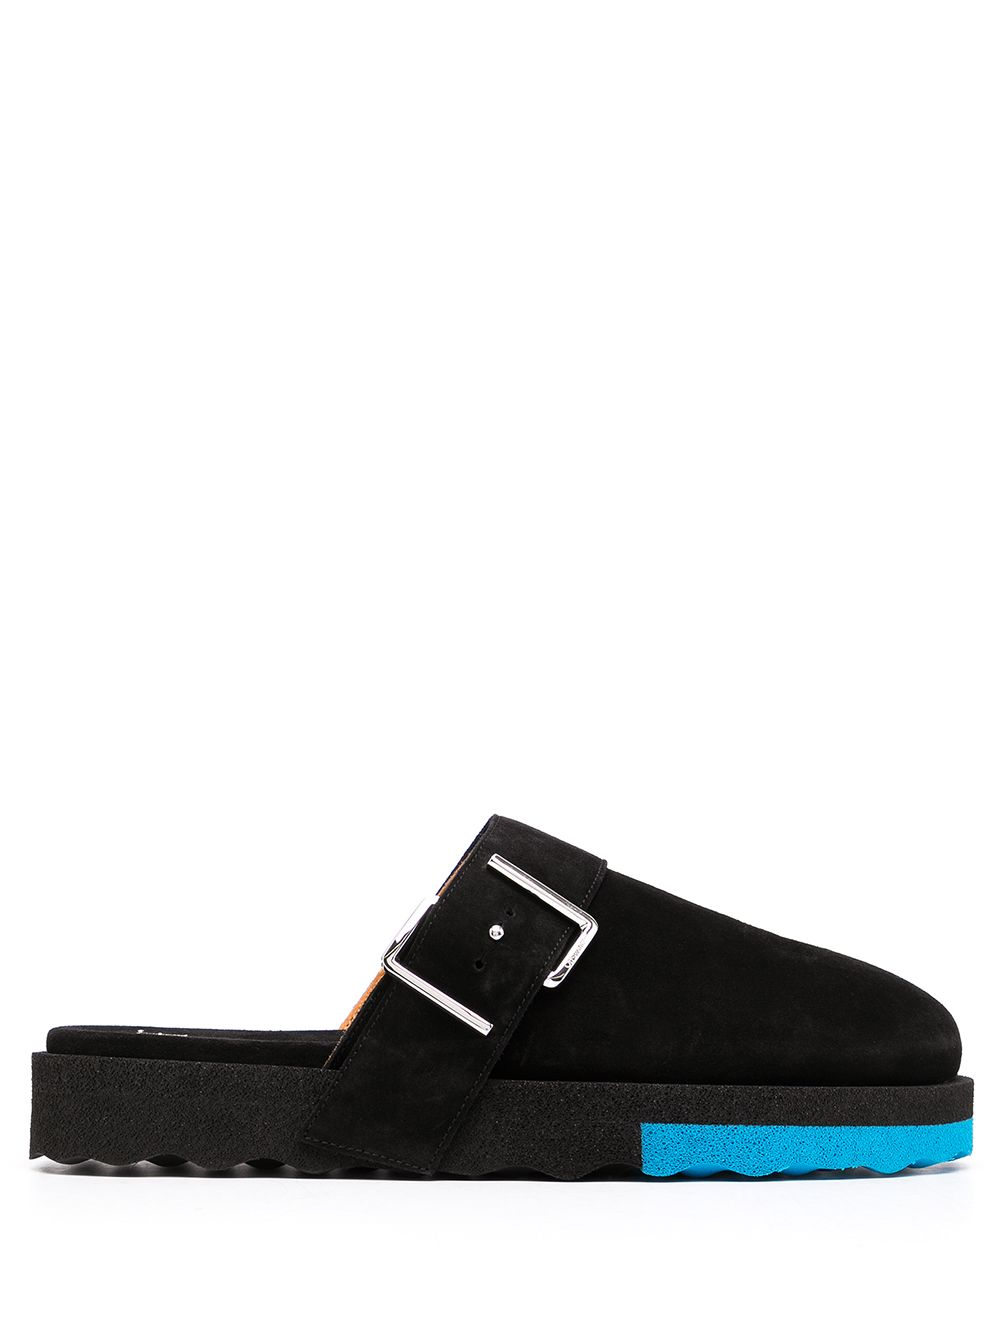 OFF-WHITE MEN COMFORT LEATHER SLIPPERS